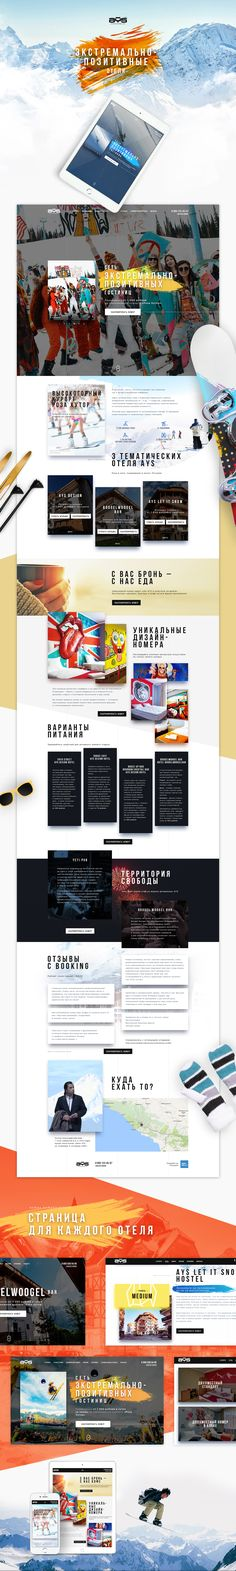 AYS Extreme hotels site on Behance